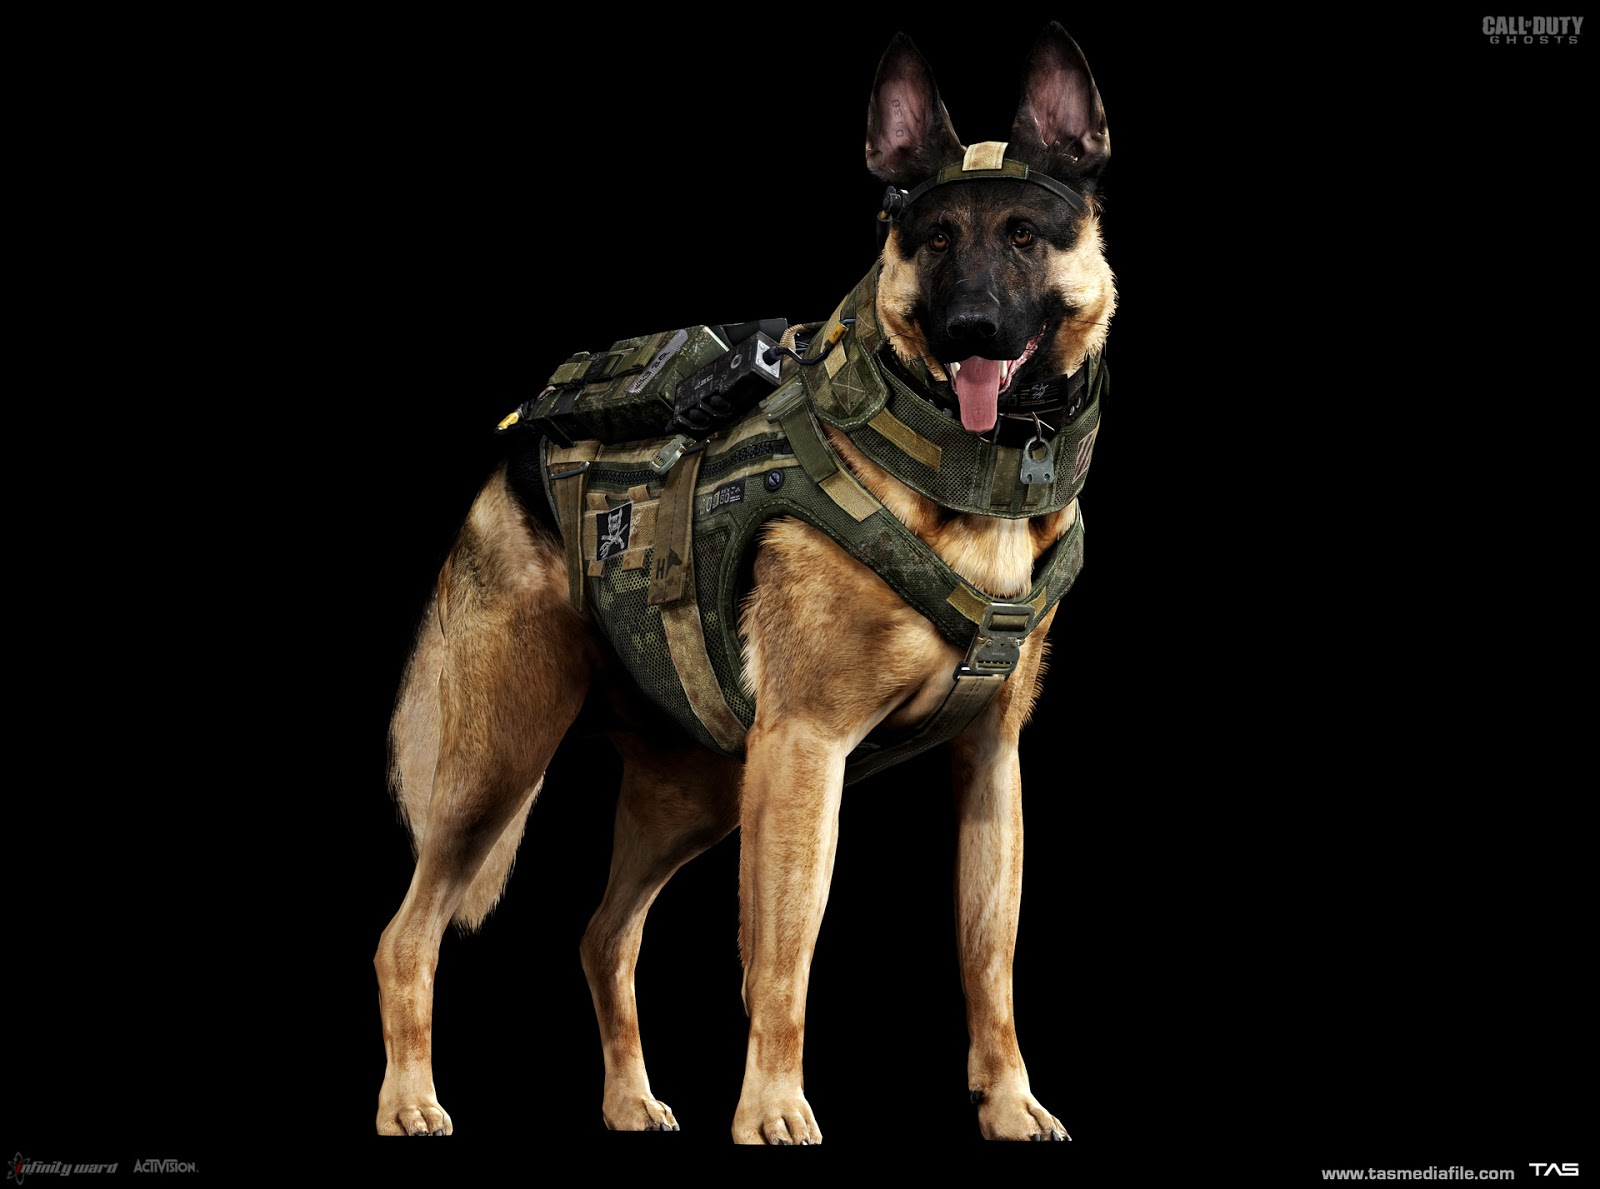 Call Of Duty Ghosts Riley